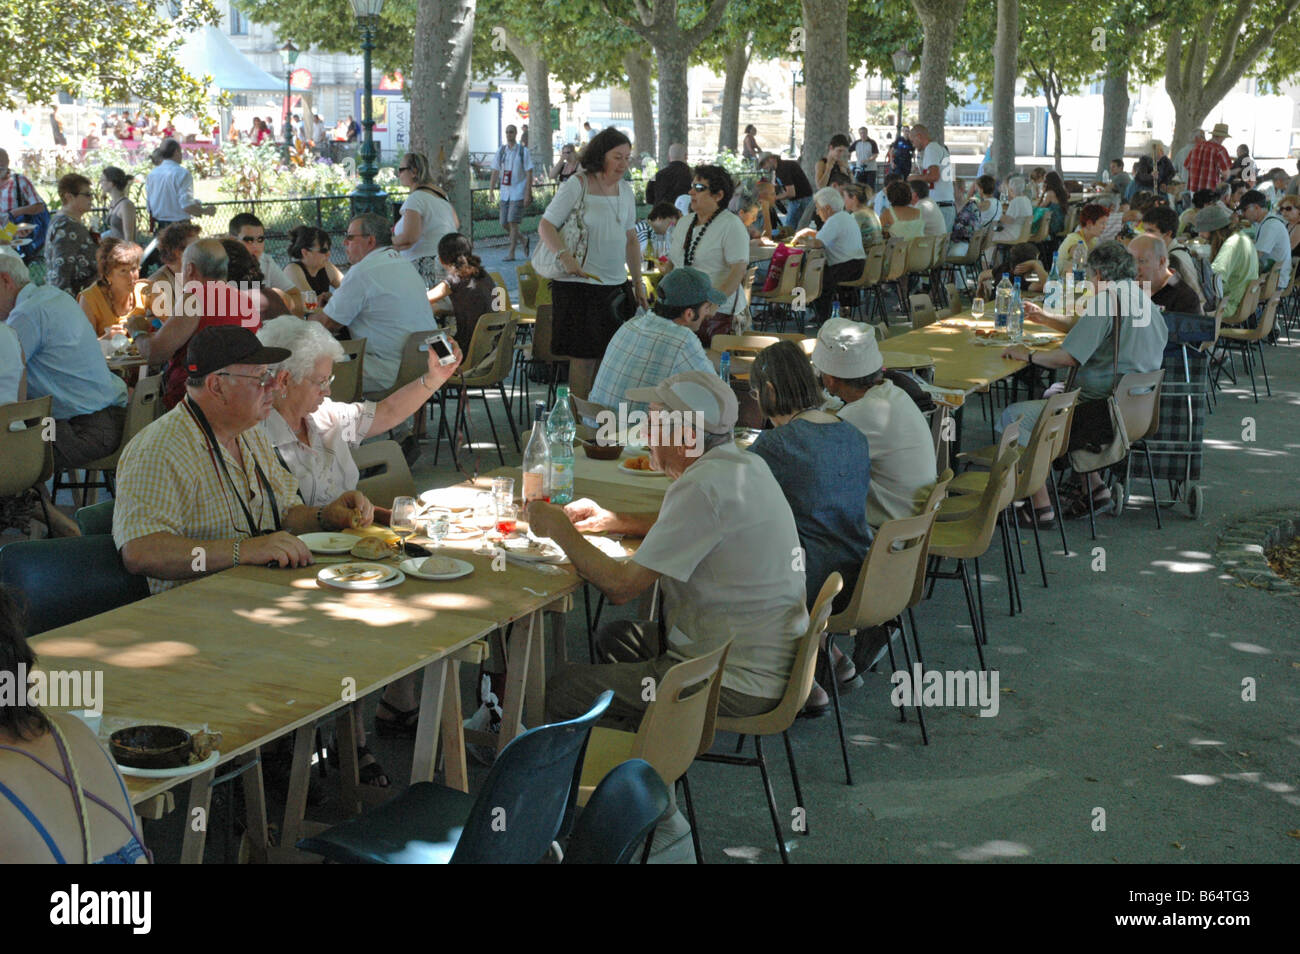 Le festin Rabelais A  GURMET PICNIC FOR 500 THOUSAND GUESTS IN THE Jardins Royaux du Peyrou IN MONTPELLIER FRANCE Stock Photo